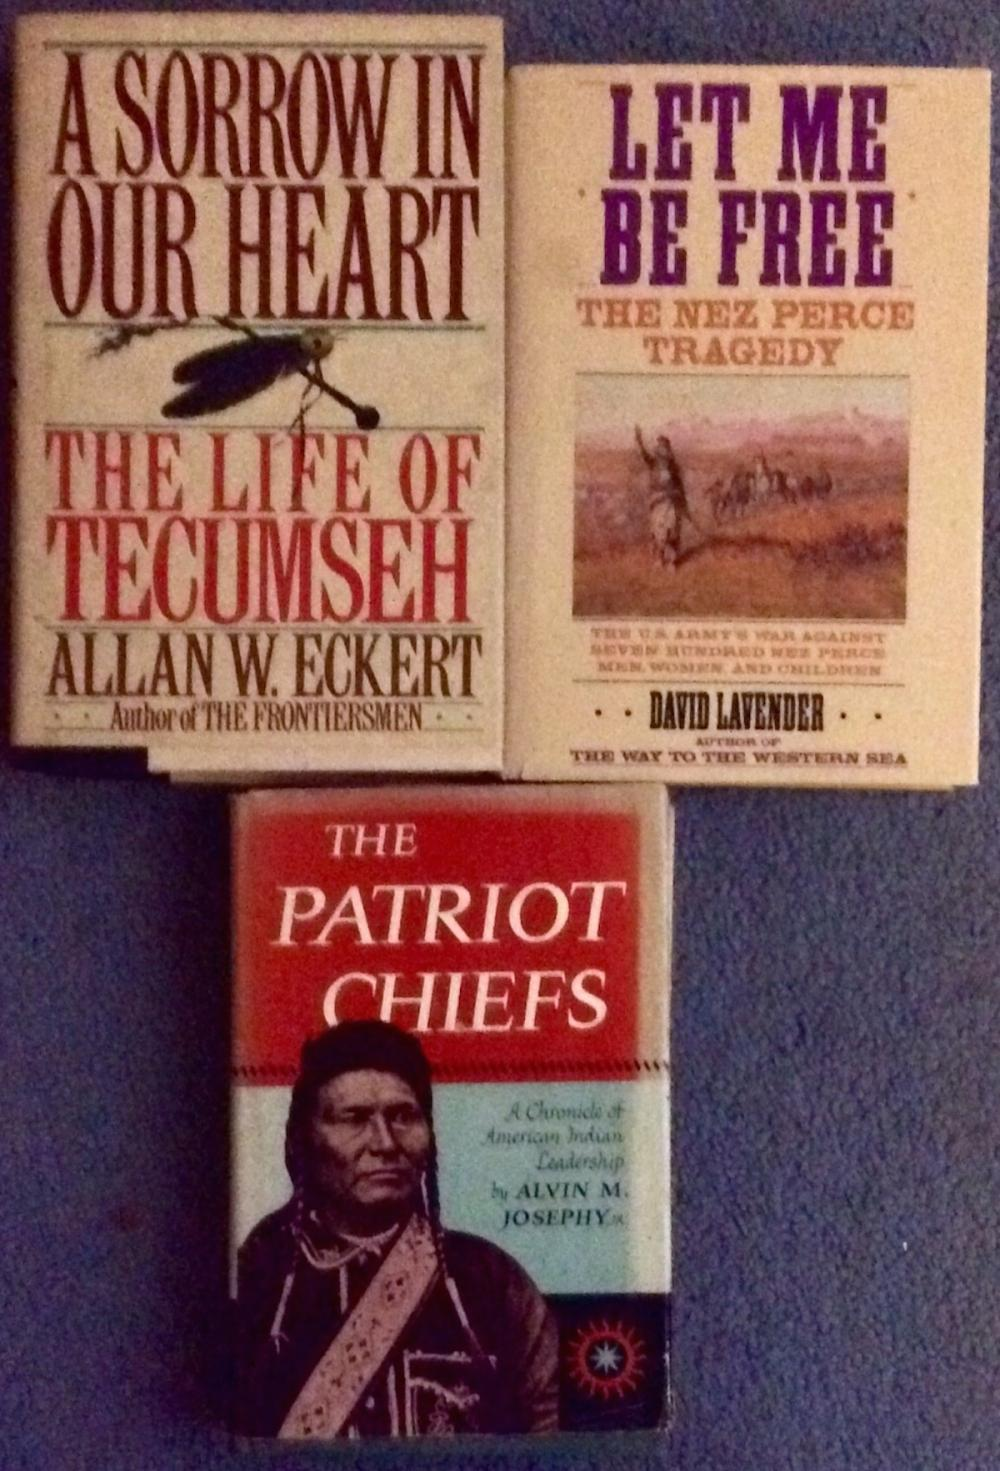 Lot of 3 VINTAGE Indian Wars History Hardcovers (2) are 1st Edition 1st Printings All Are  In DJs